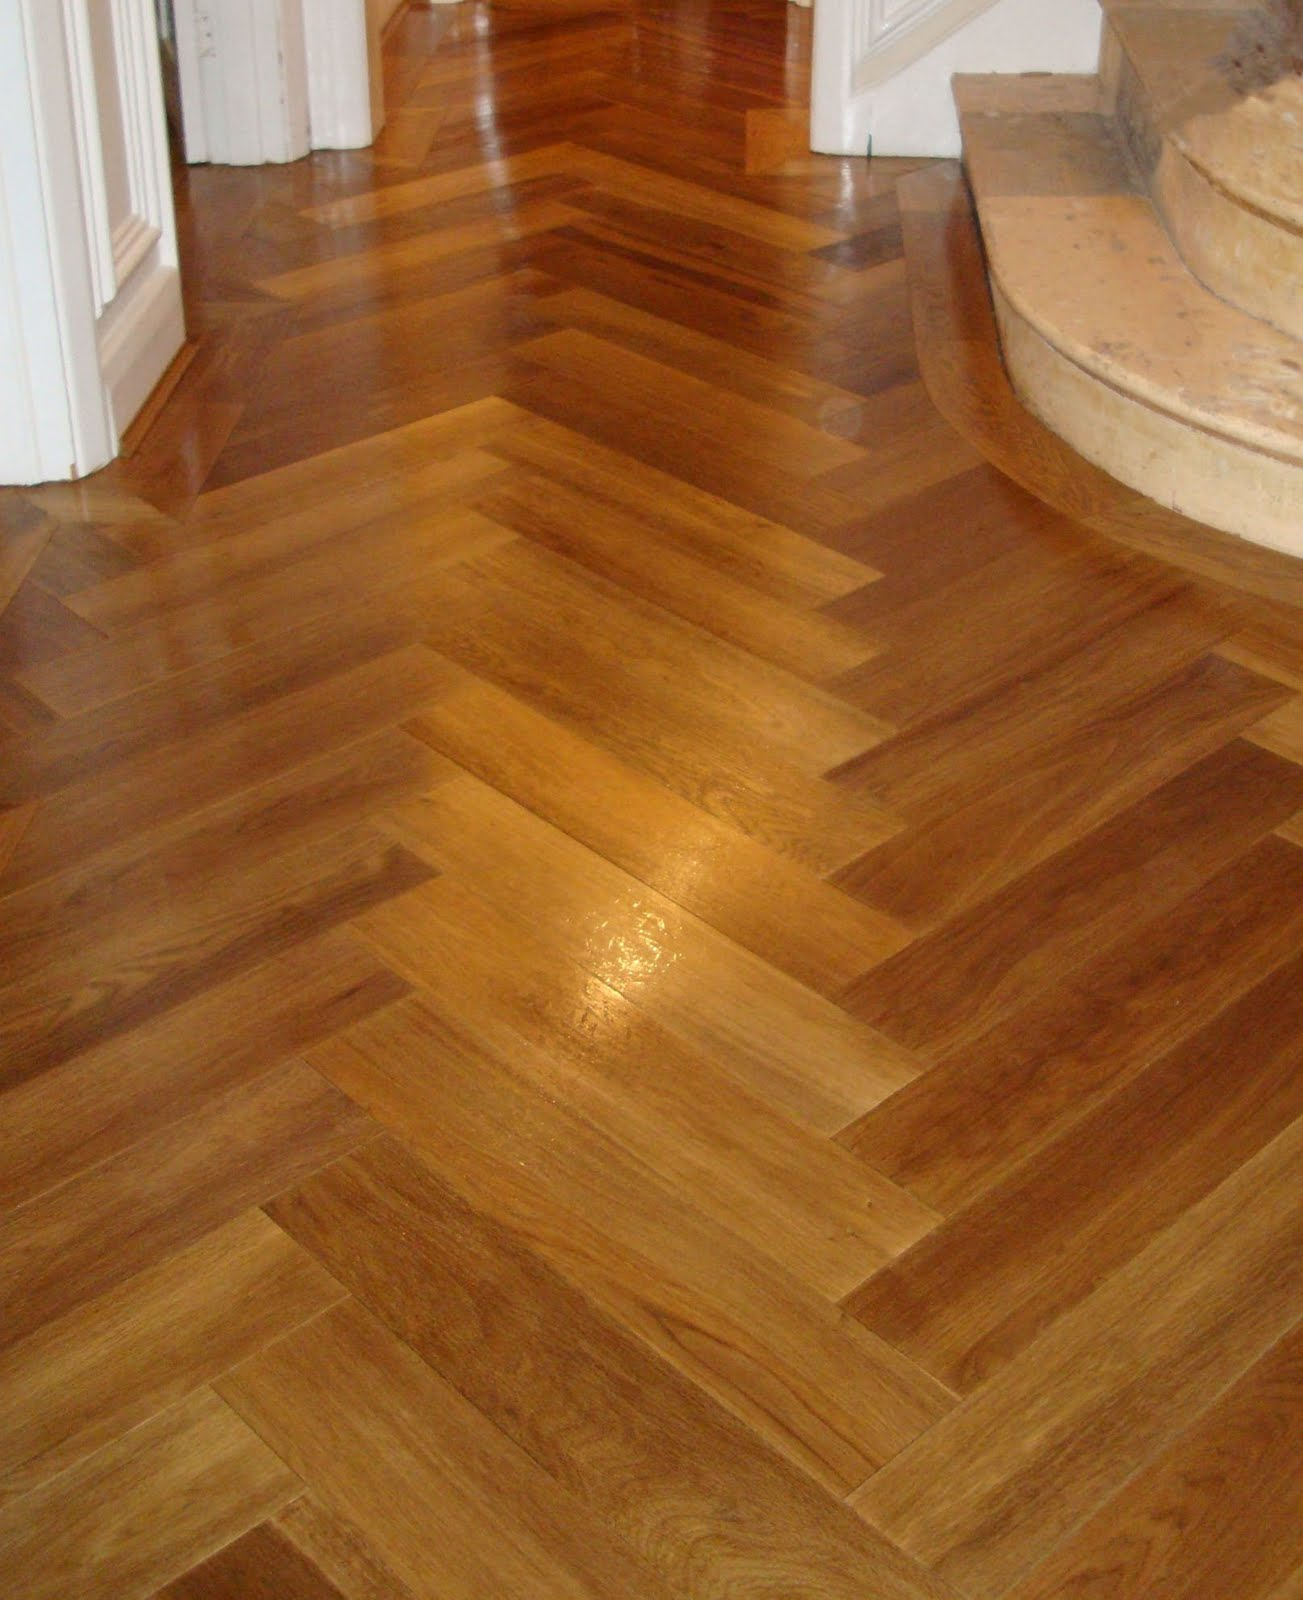 Hardwood Floor Pattern Design Ideas Joy Studio Design